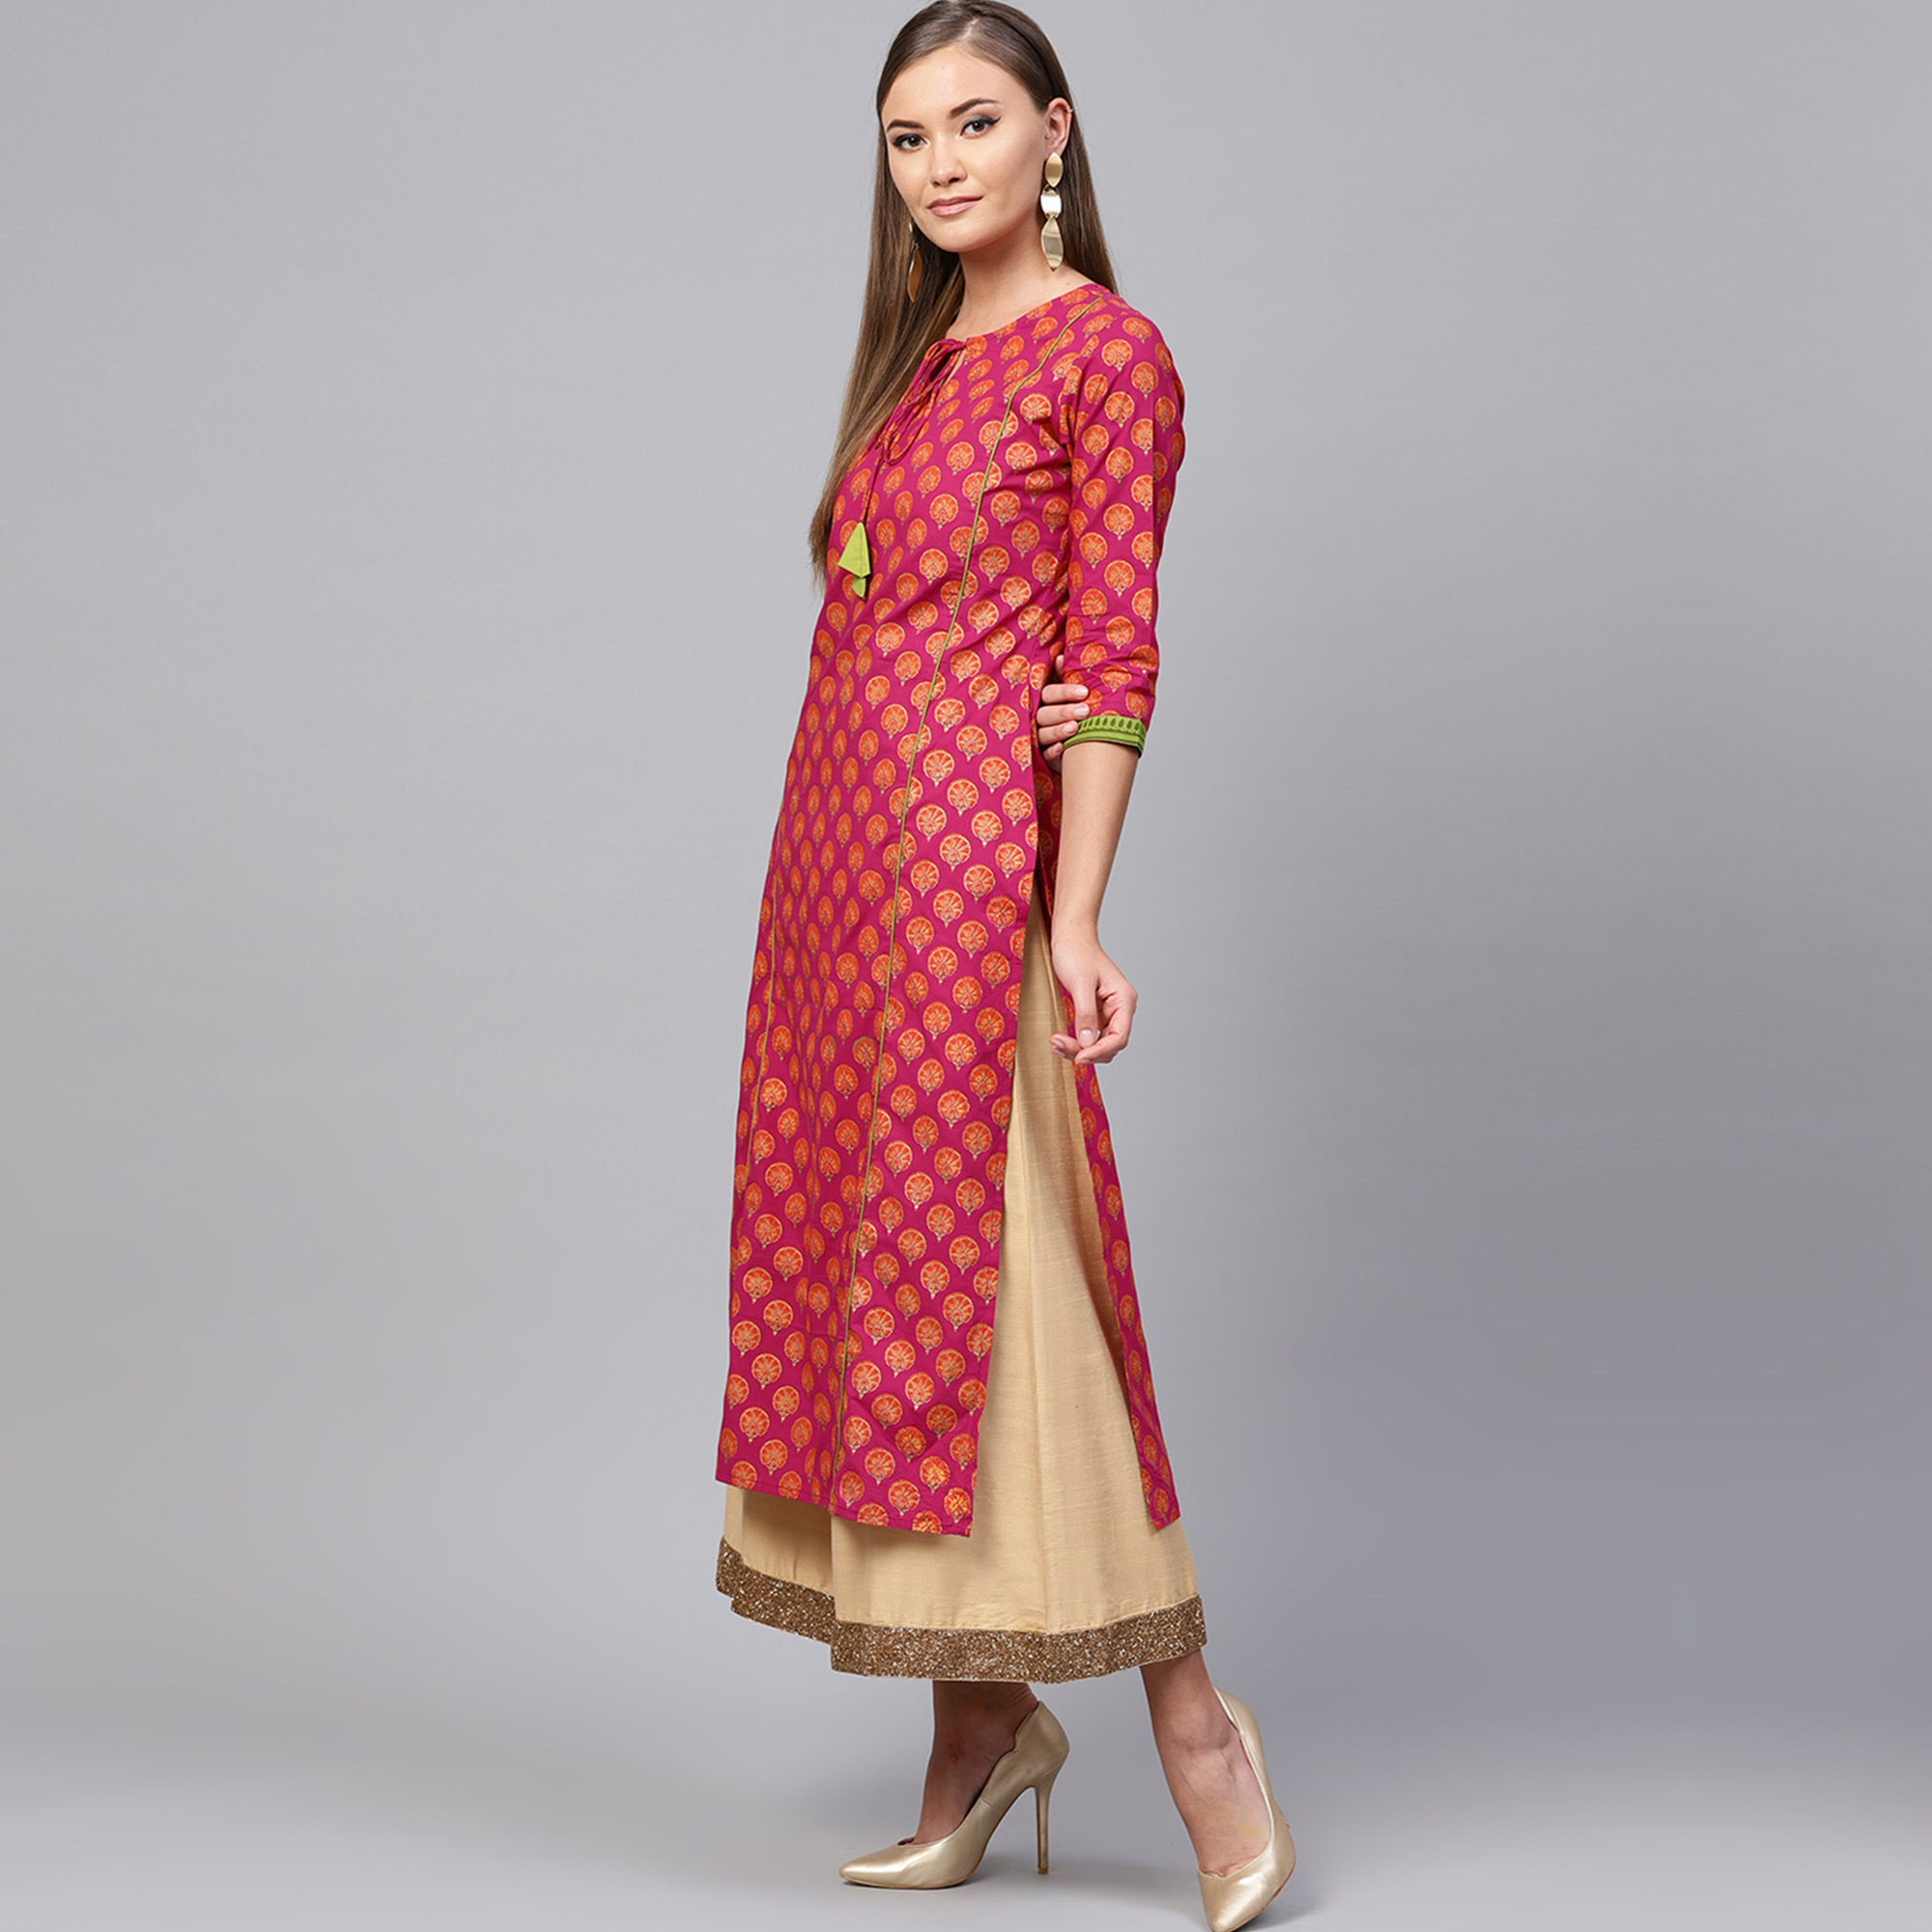 Preferable Pink Colored Casual Printed Cotton Kurti